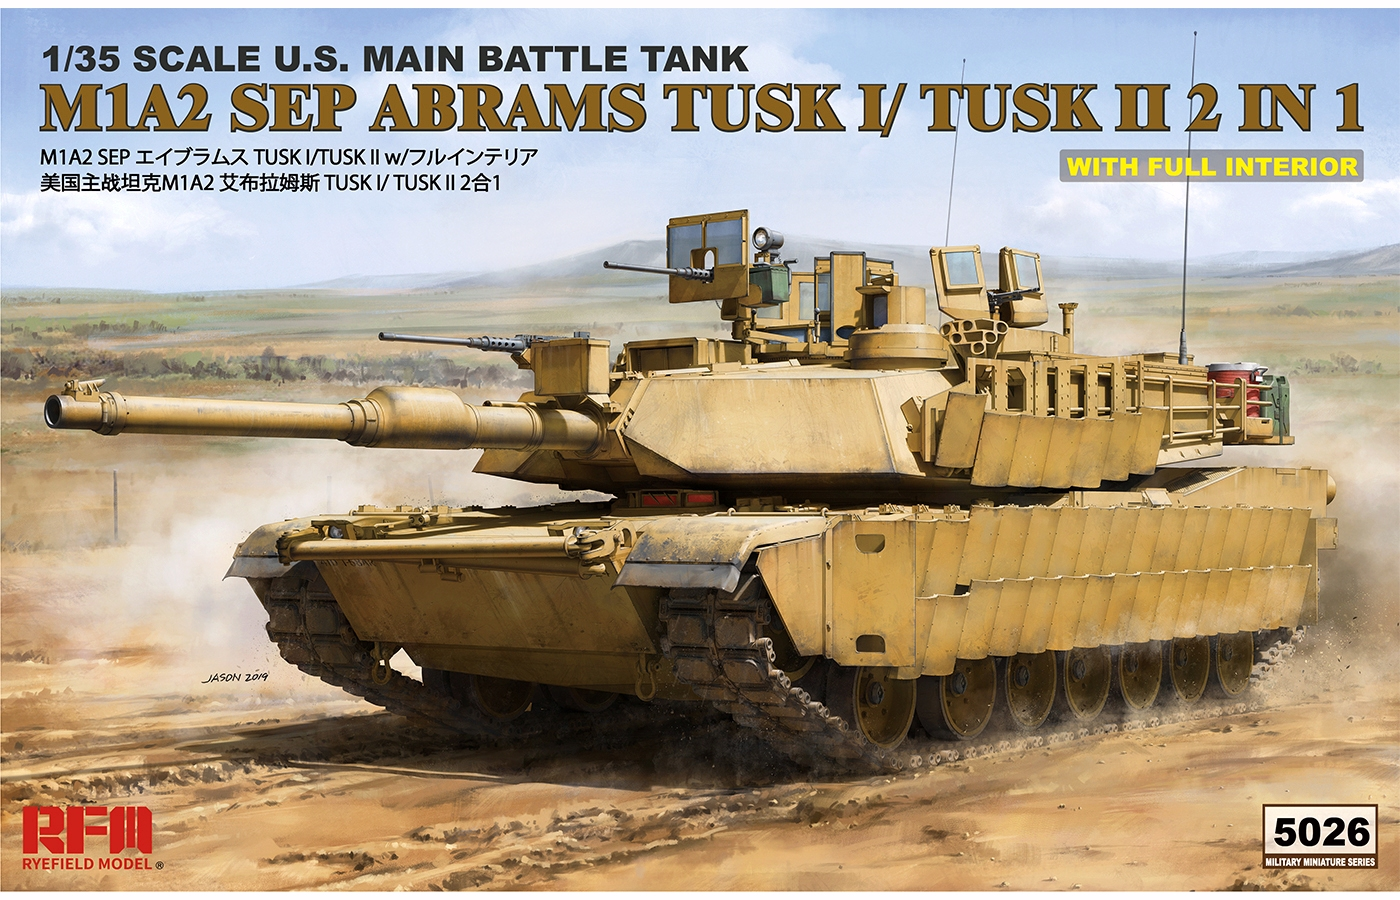 M1A2 SEP Abrams TUSK I / TUSK II with FULL interior